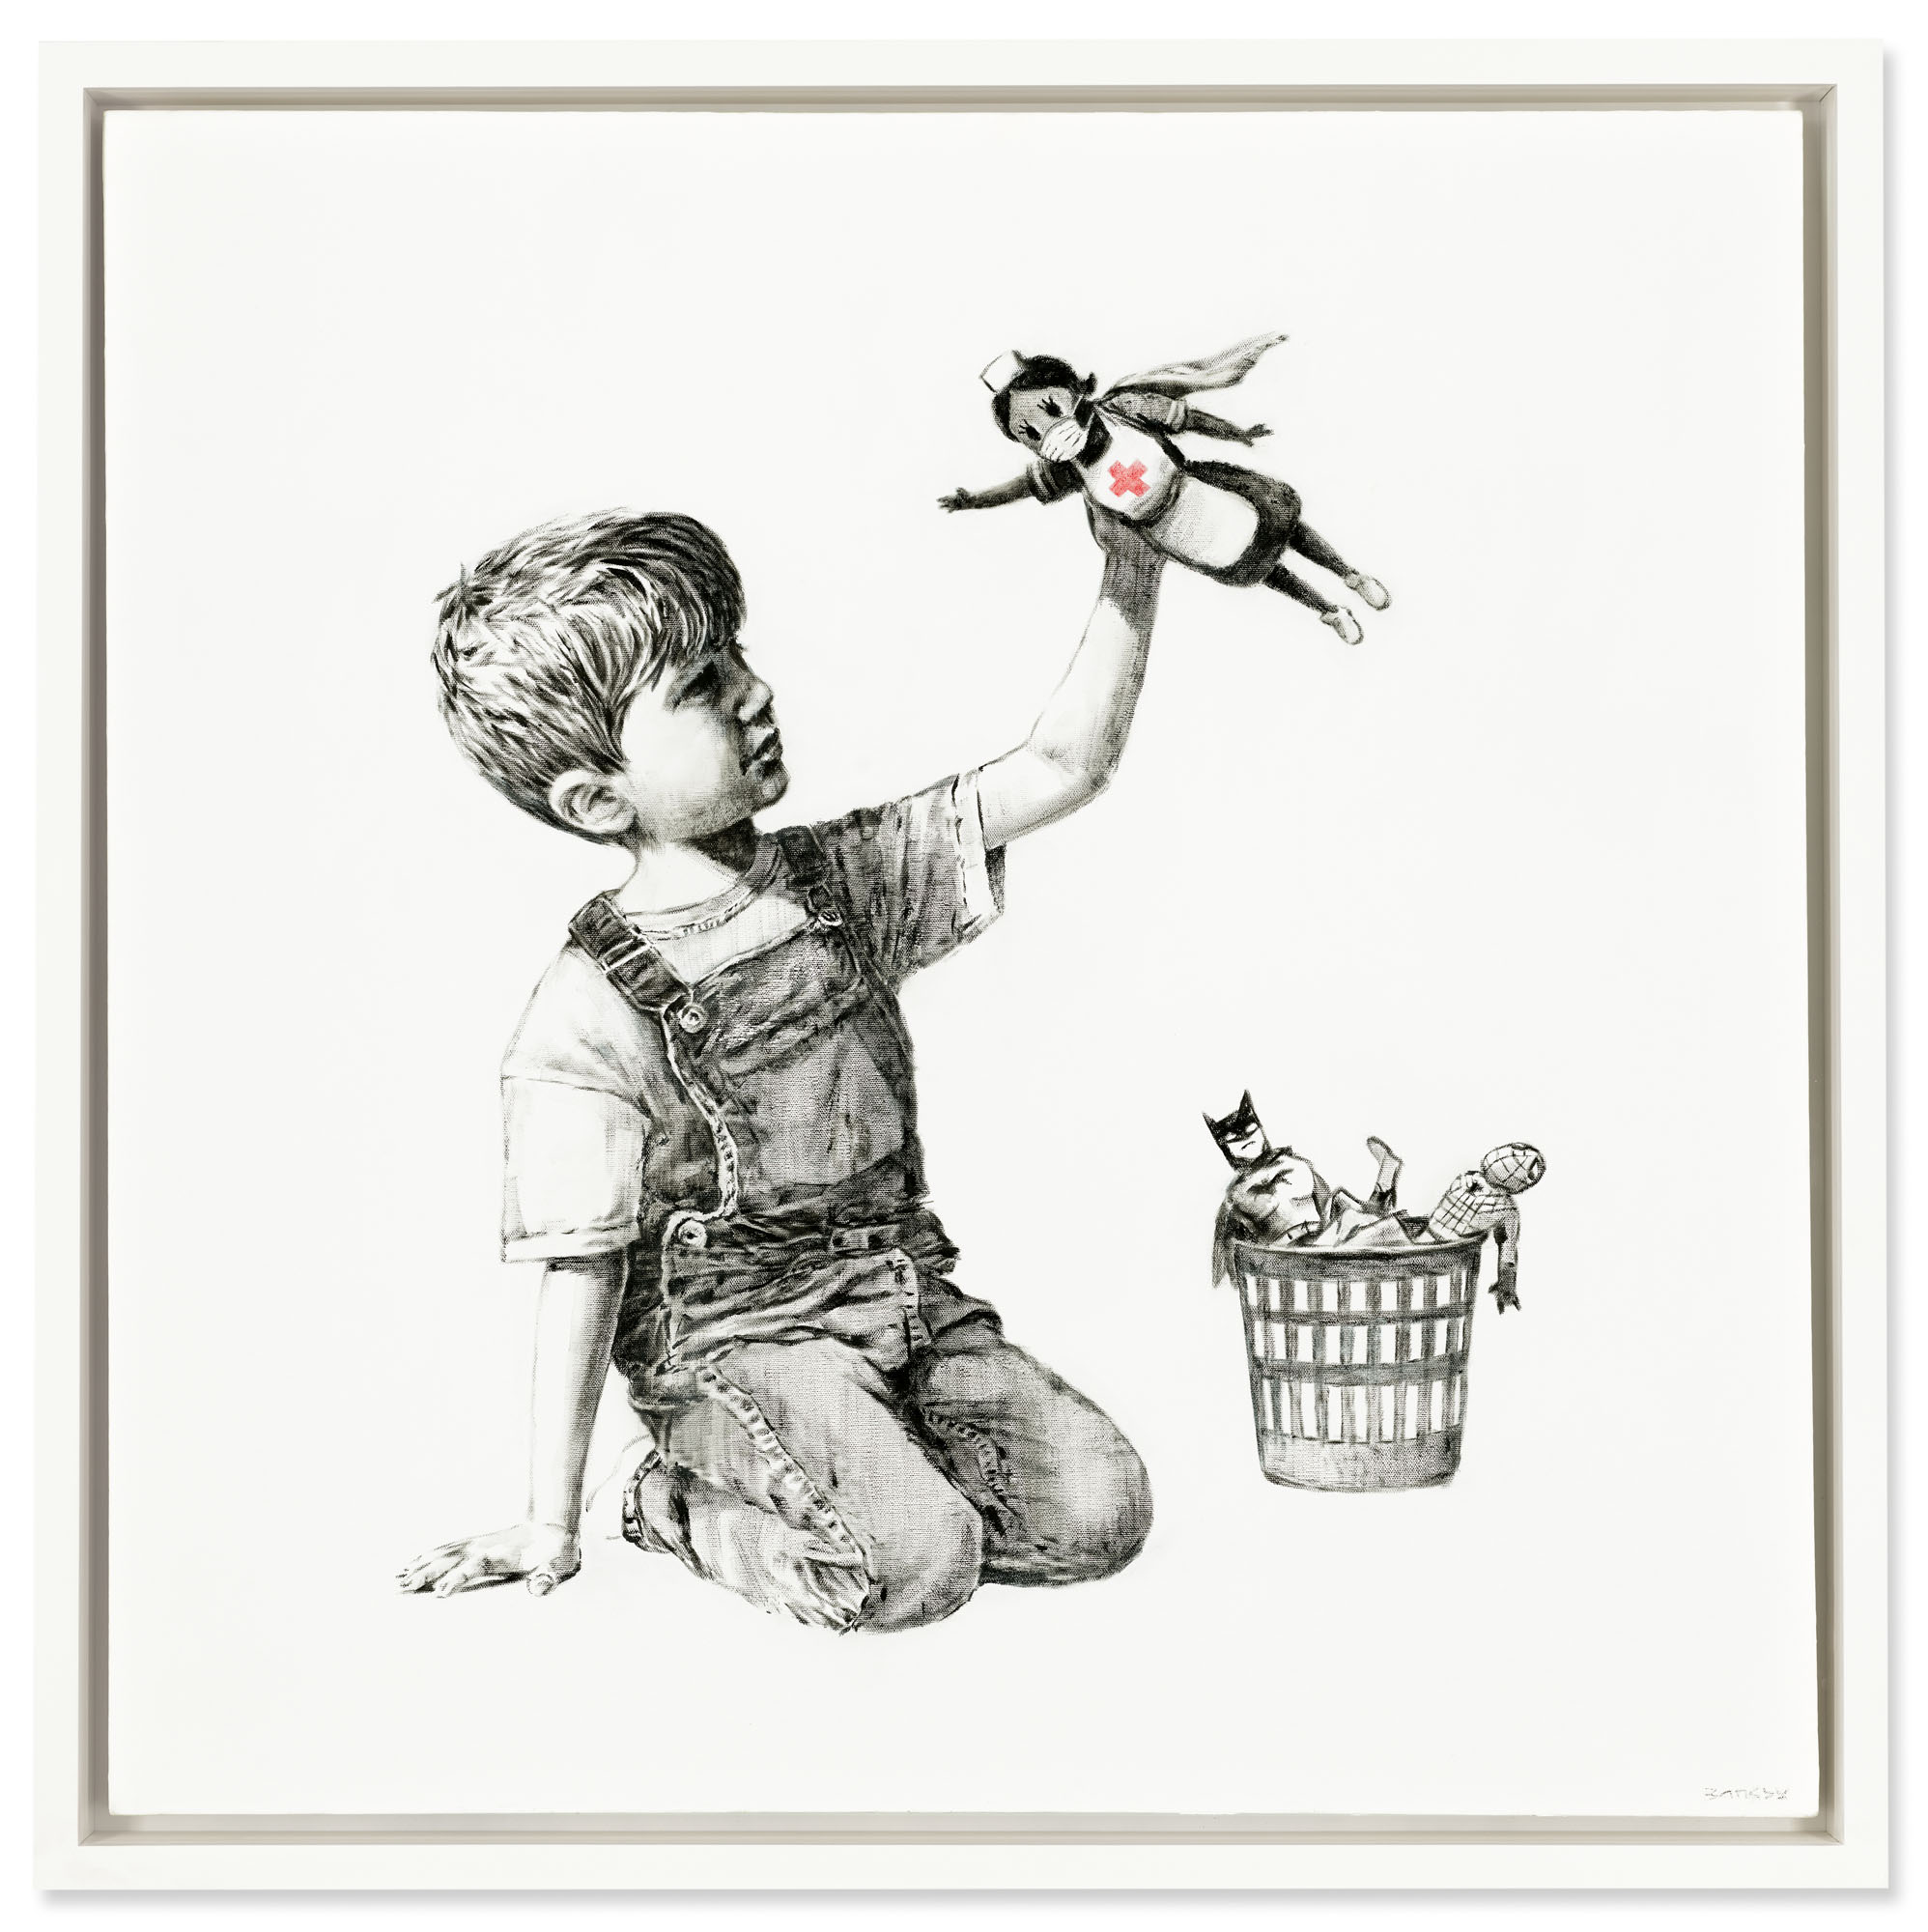 Banksy, Game Changer, 2020. Oil on canvas. 35⅞ x 35⅞ in (91 x 91 cm). Sold for £16,758,000 on 23 March 2021 at Christie's in London